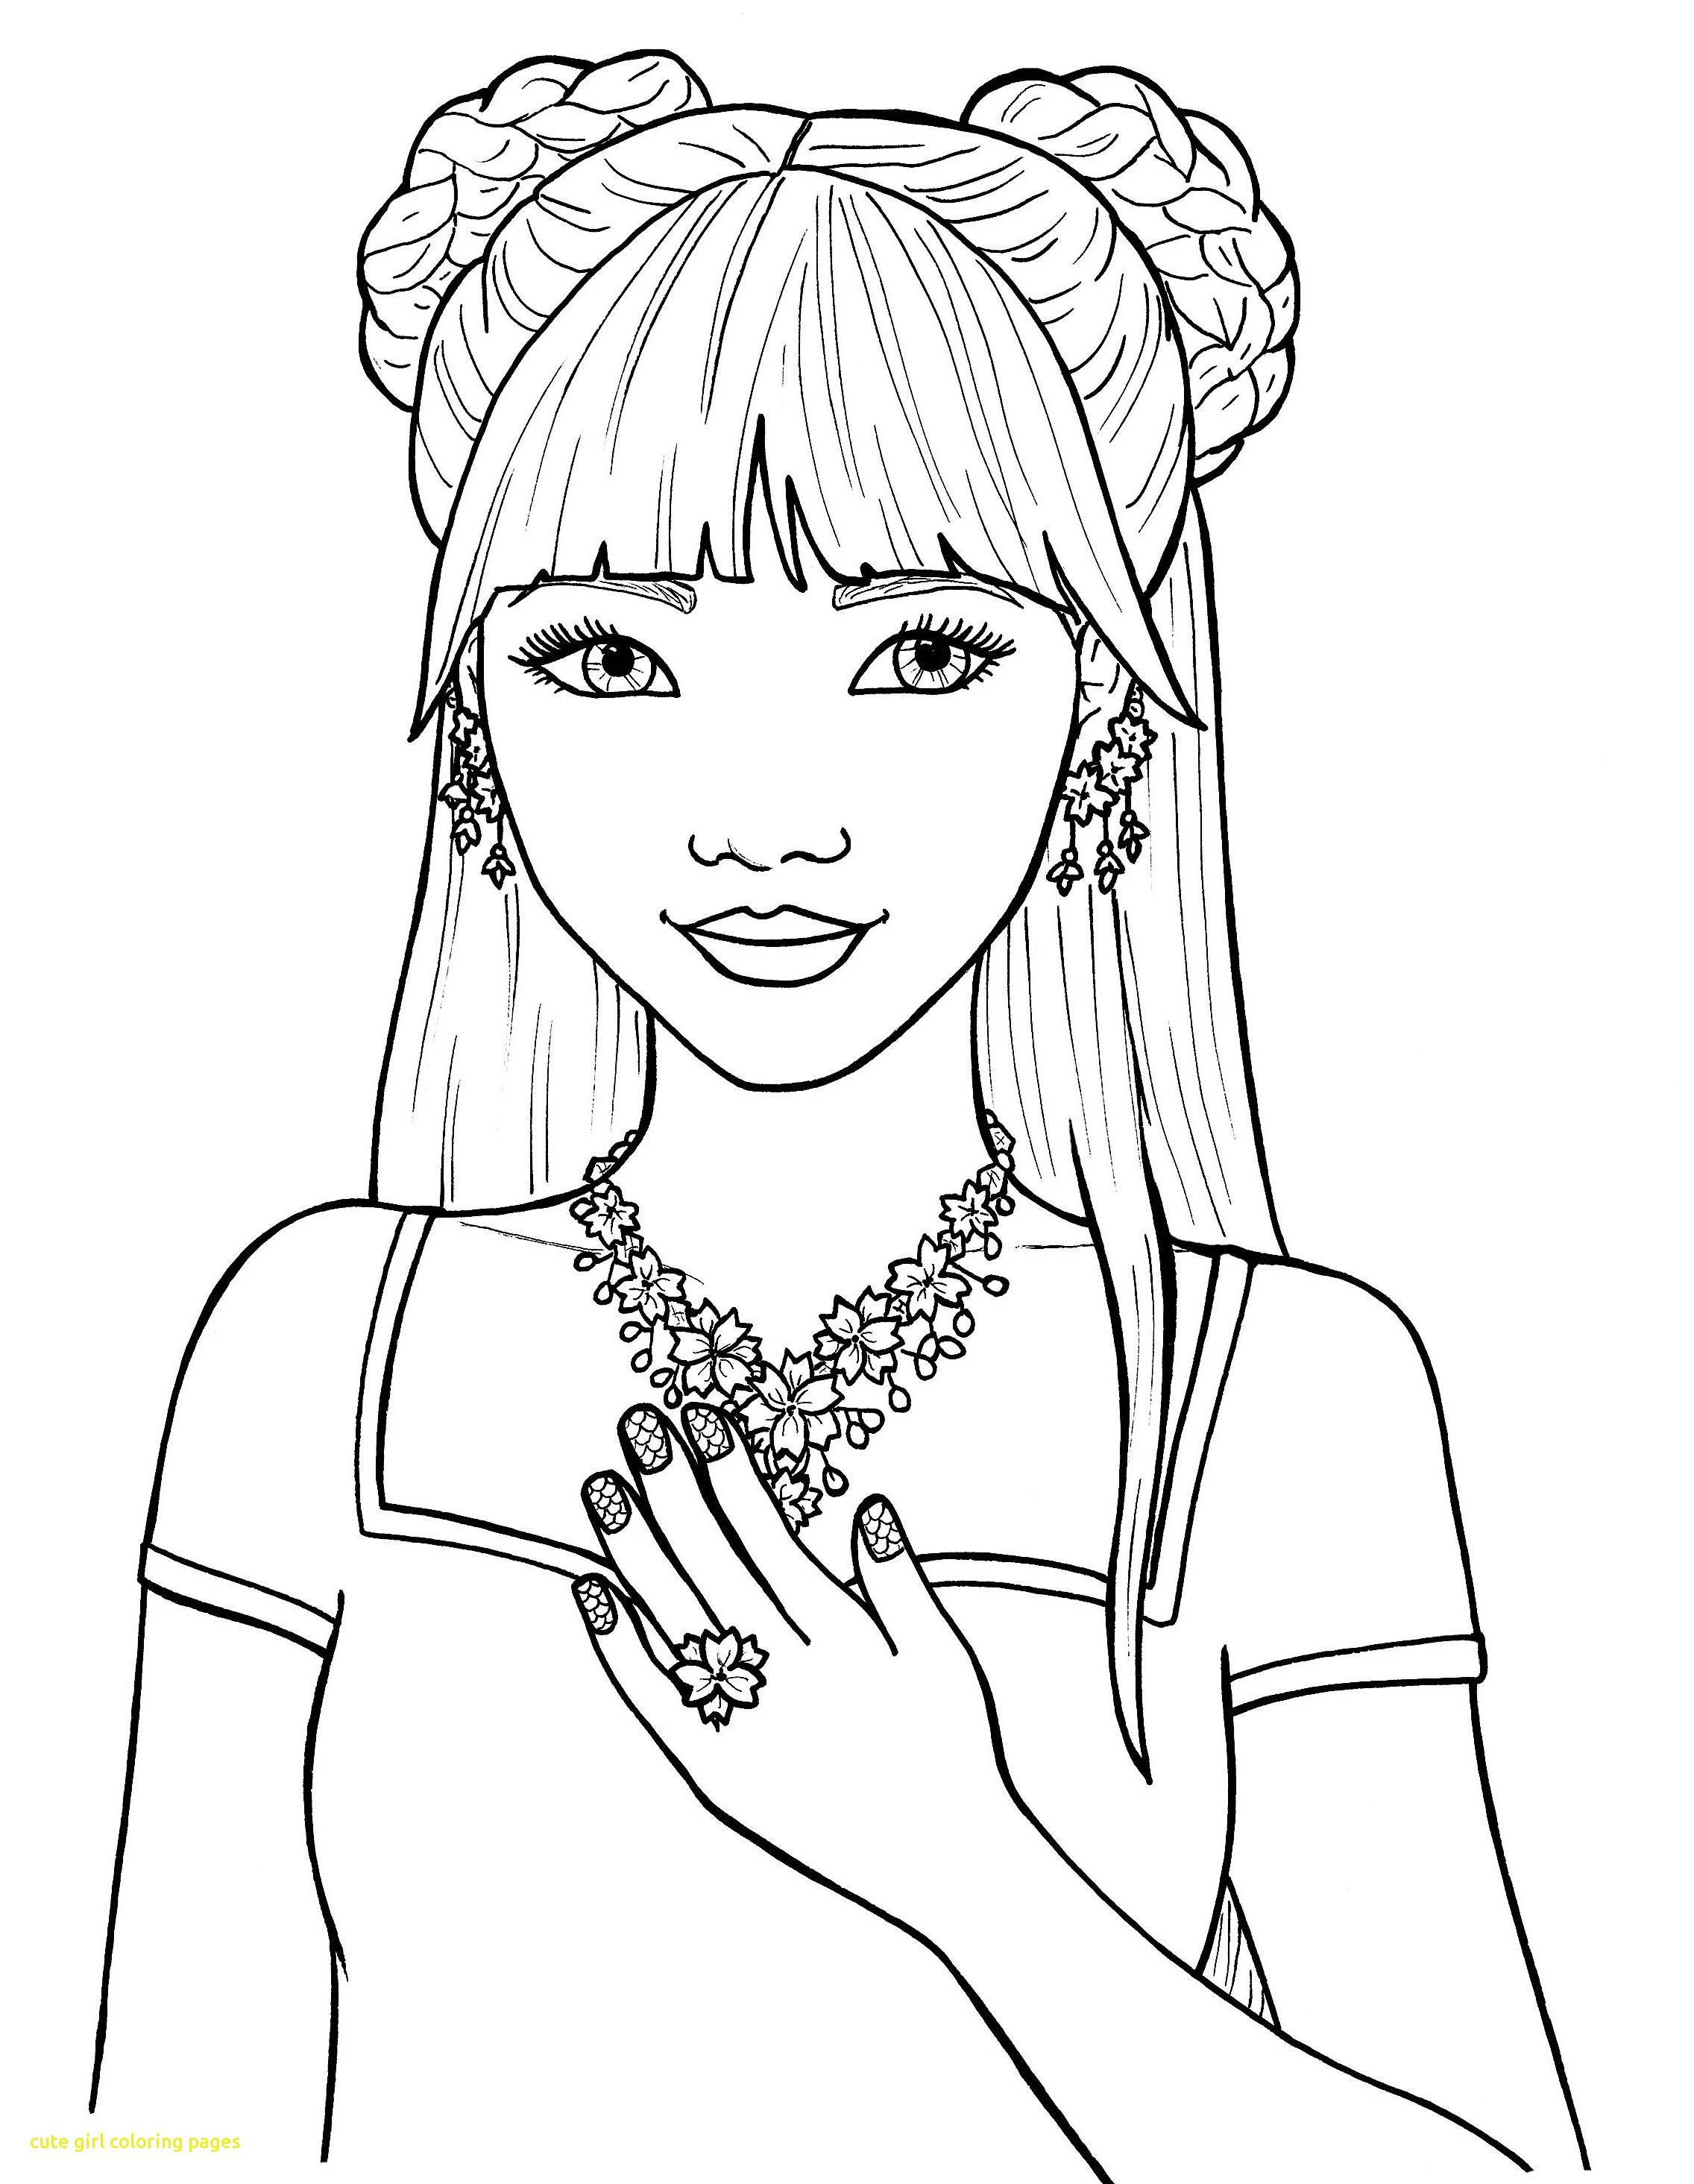 girl coloring books coloring pages for girls best coloring pages for kids coloring girl books